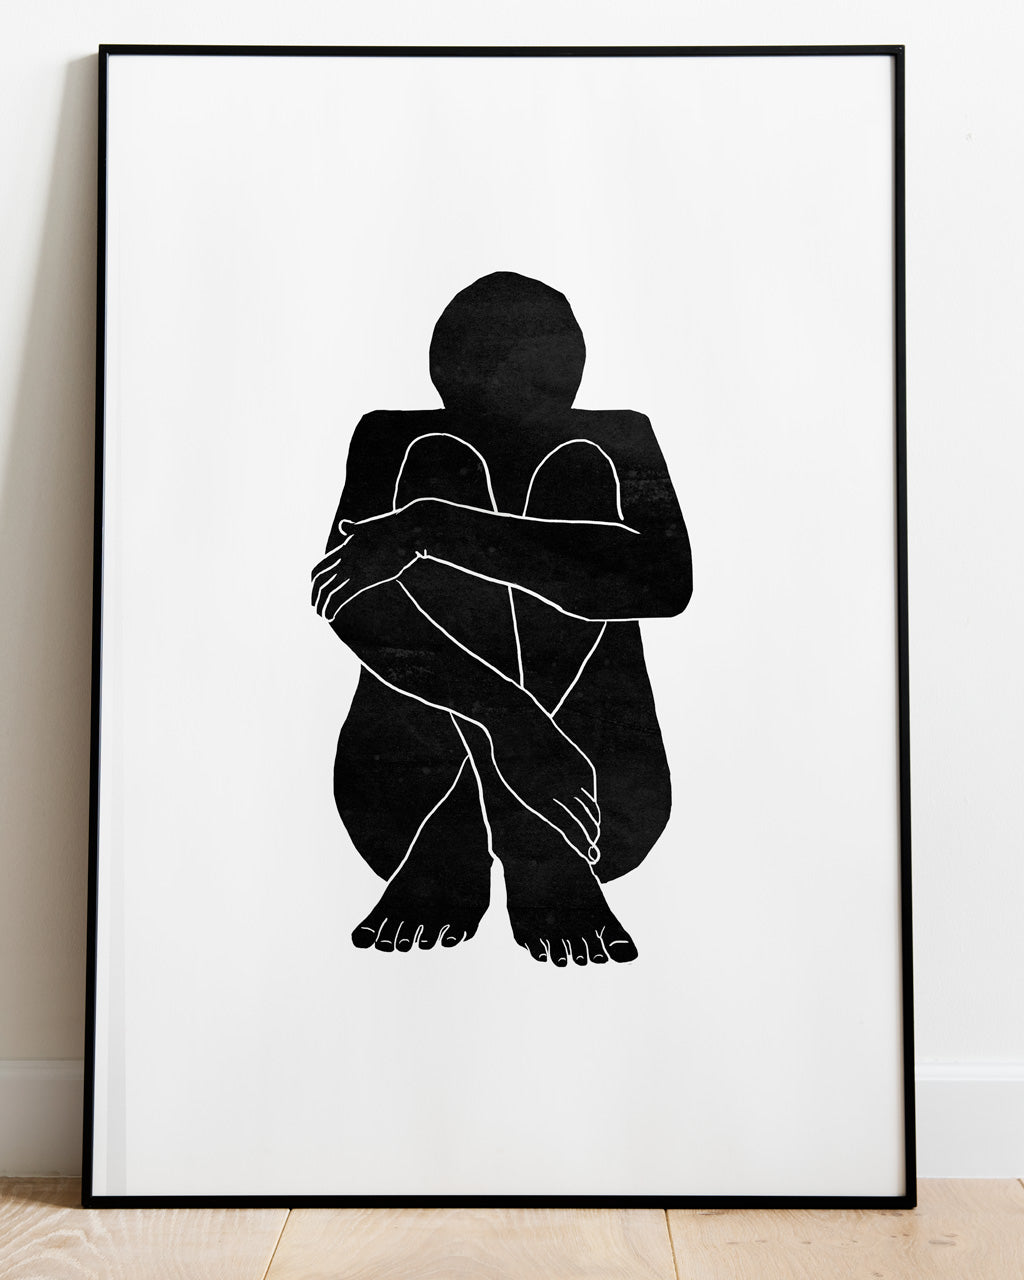 Cross legged Girl - Limited edition Screen Print - A2 size